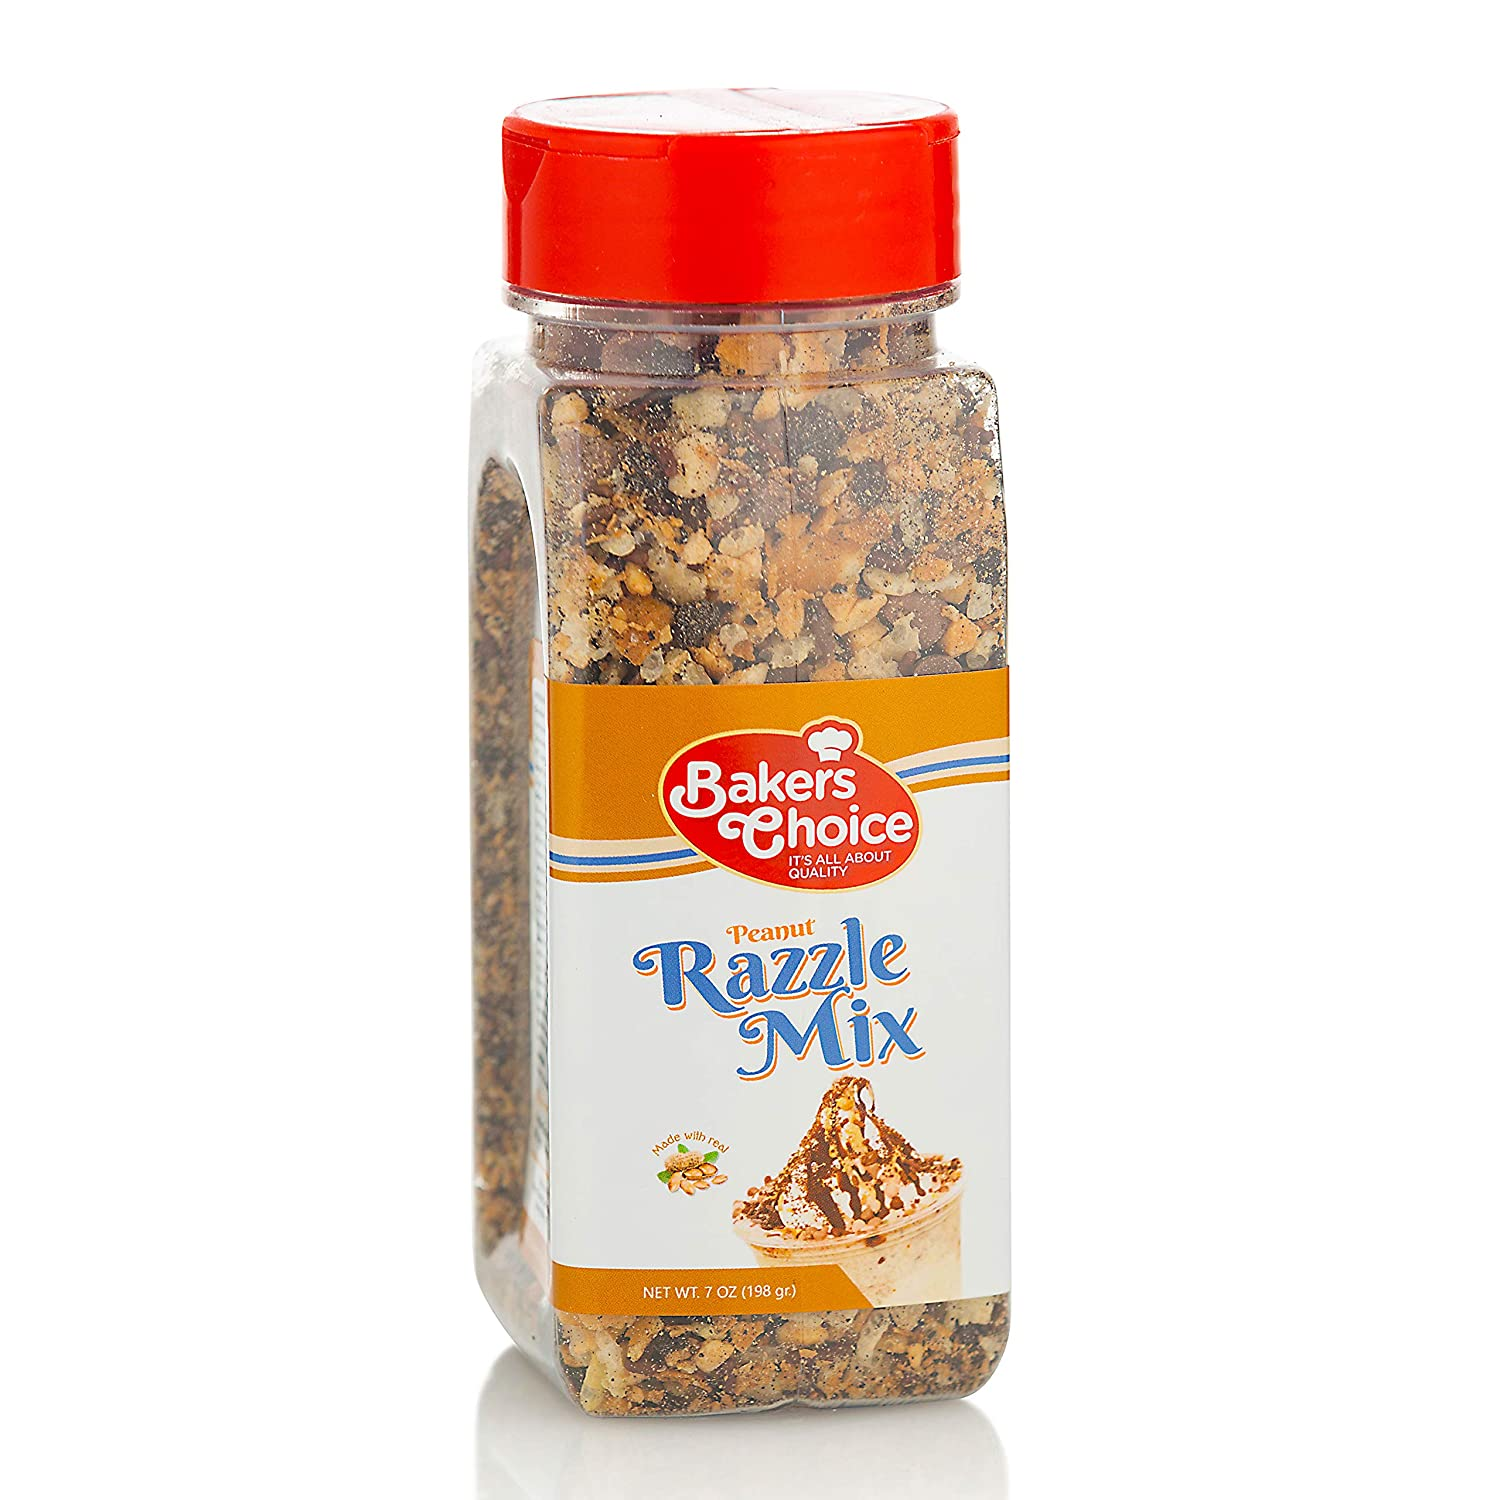 Peanut Razzle Crunch Topping - Chocolate, Caramel, Butterscotch and Peanut Mix - Sprinkles for Ice Cream Sundae Toppings - 7 oz. - Dairy Free, Kosher - Baker's Choice